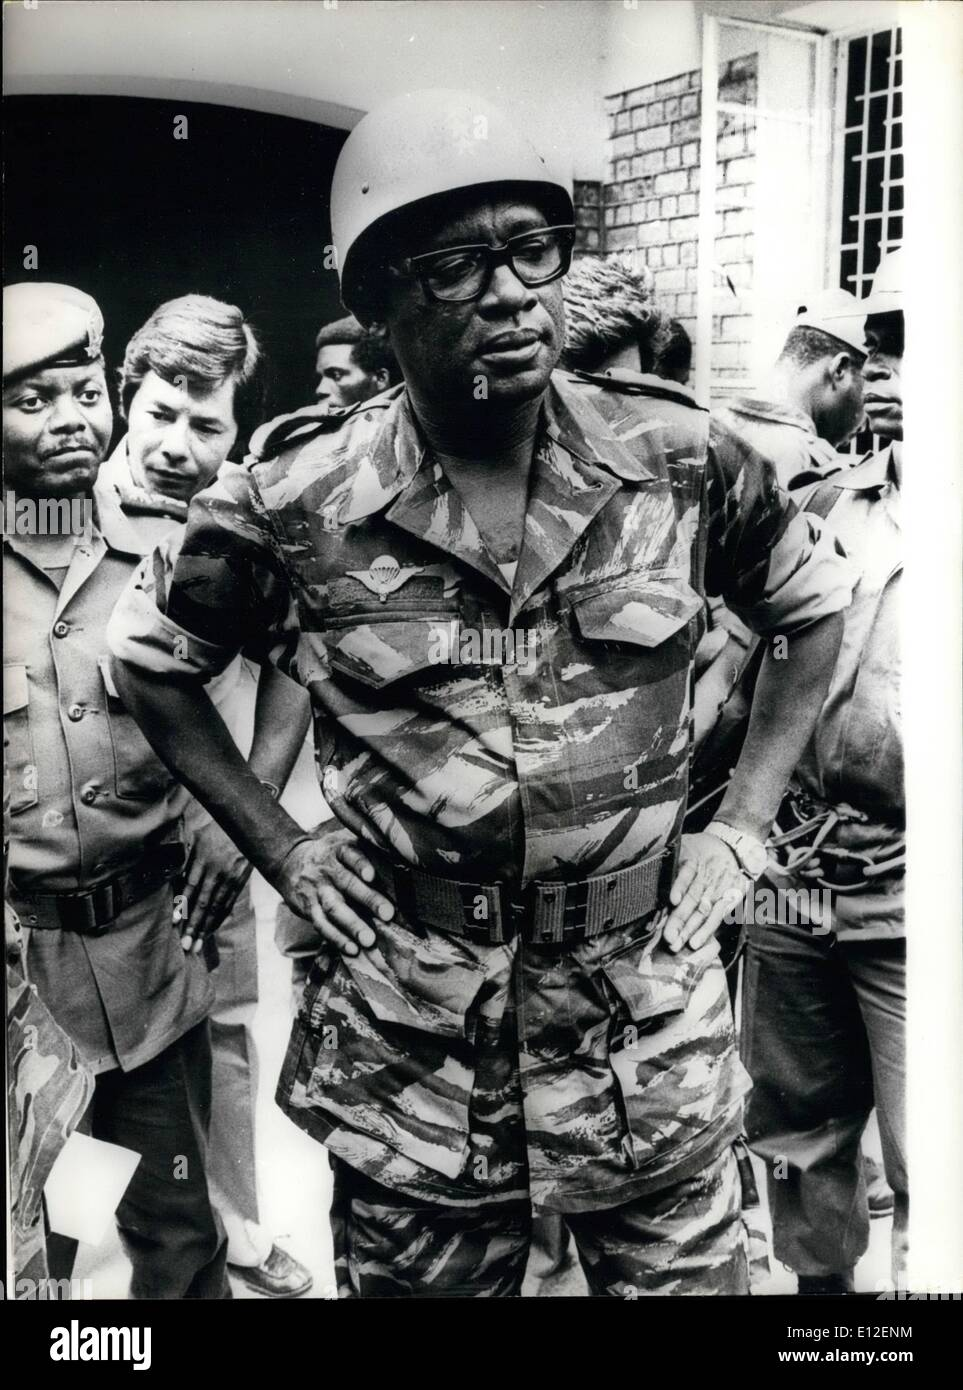 Dec. 21, 2011 - President Mobutu Meets His Allies - President Mobutu of Zaire paid a visit to his mixed force of Zairean and Moroccan troops on the outtakirts of Mutenhatahe, dressed in a para outfit. - Stock Image